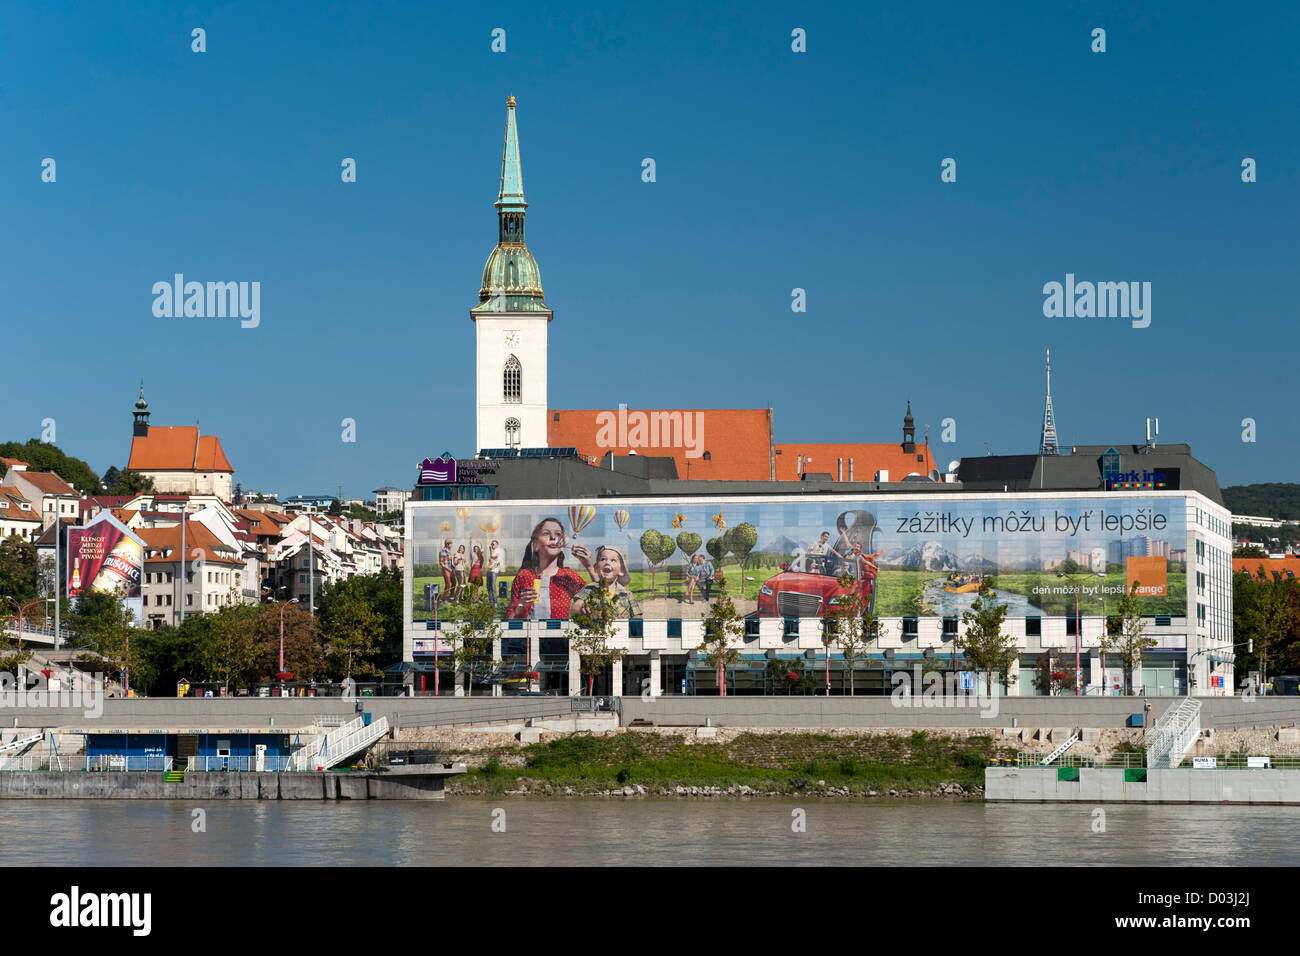 St. Martin's Cathedral (aka the Coronation Church) and the Danube River in Bratislava, the capital of Slovakia. - Stock Image